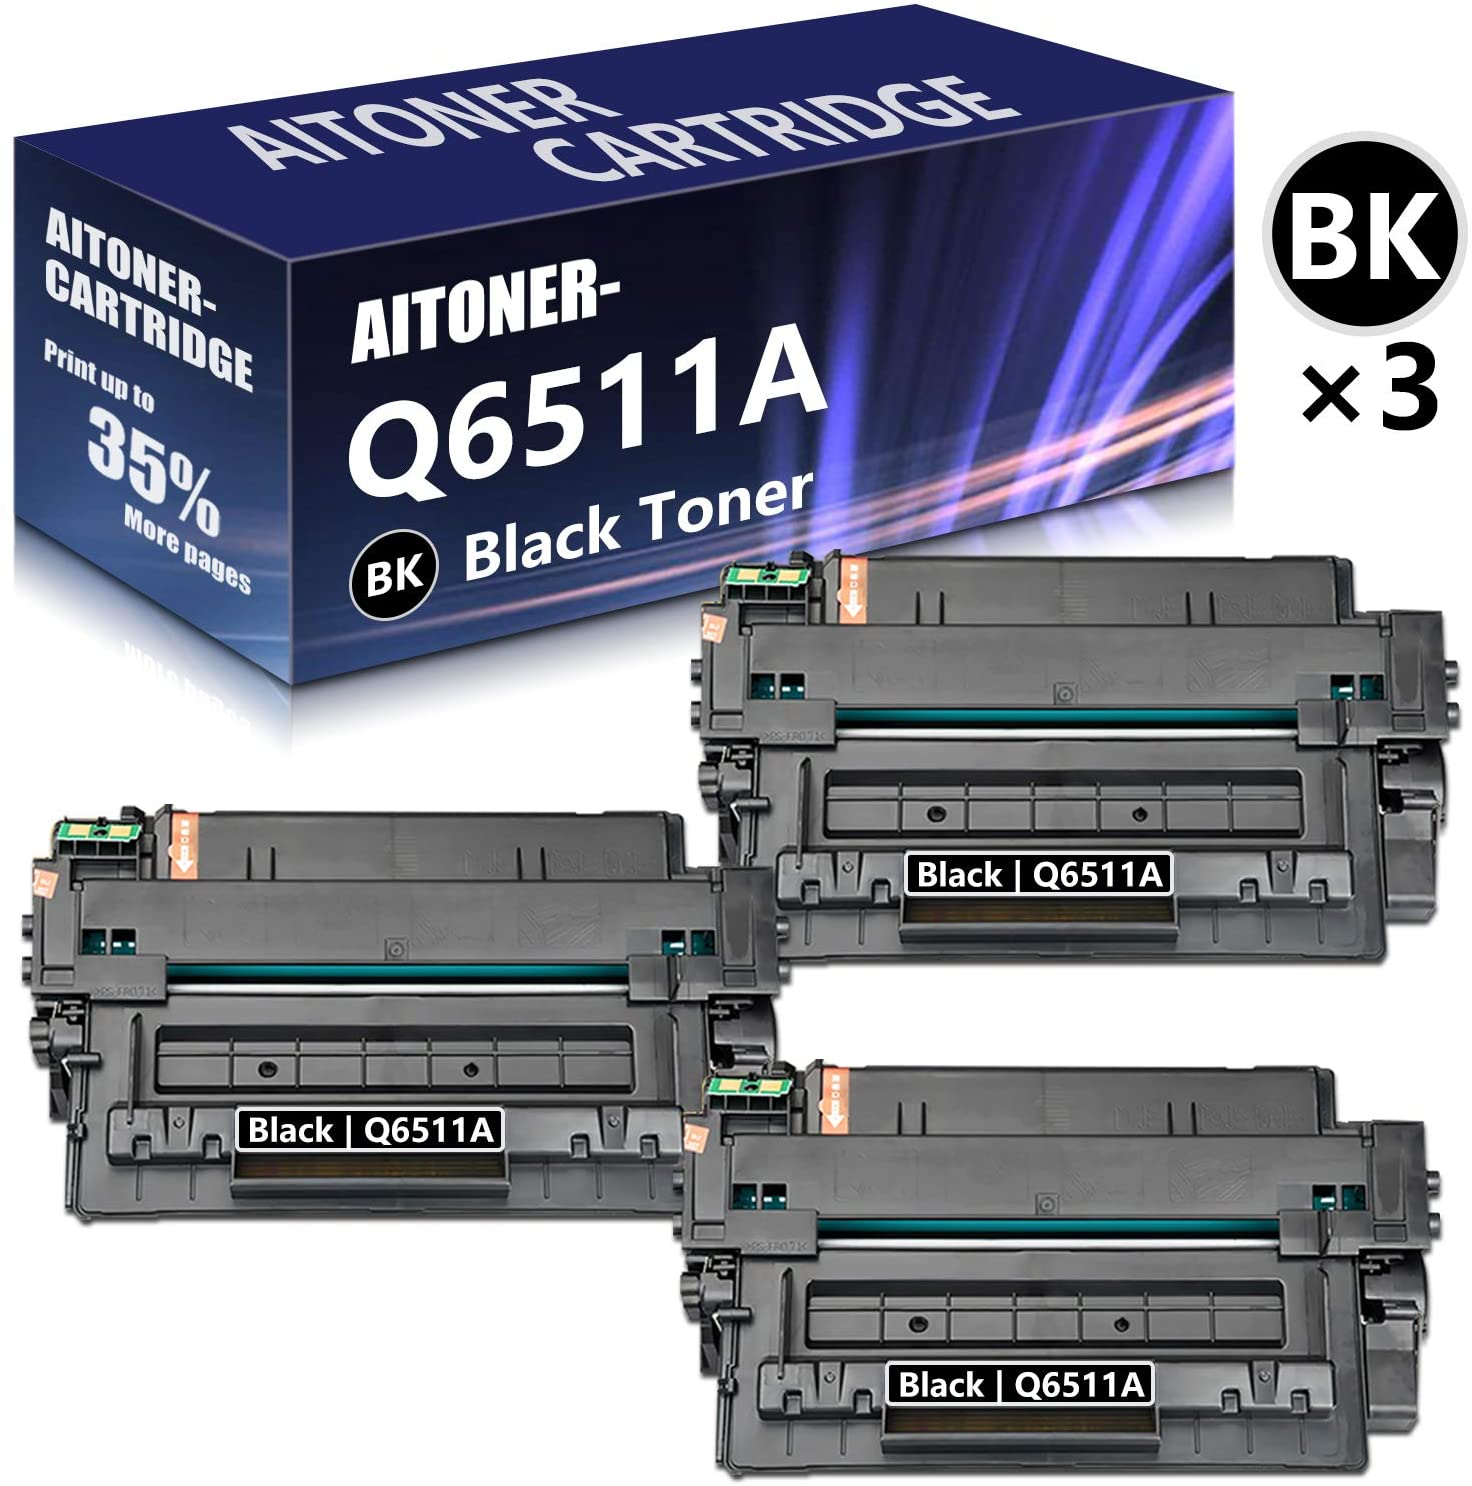 3 Pack (Black) 11A | Q6511A Toner Cartridge Replacement for HP Laserjet 2410 2430 2430n 2430dtn 2430tn 2420dn 2420n 2420d 2420 Printers,Sold by AlToner.